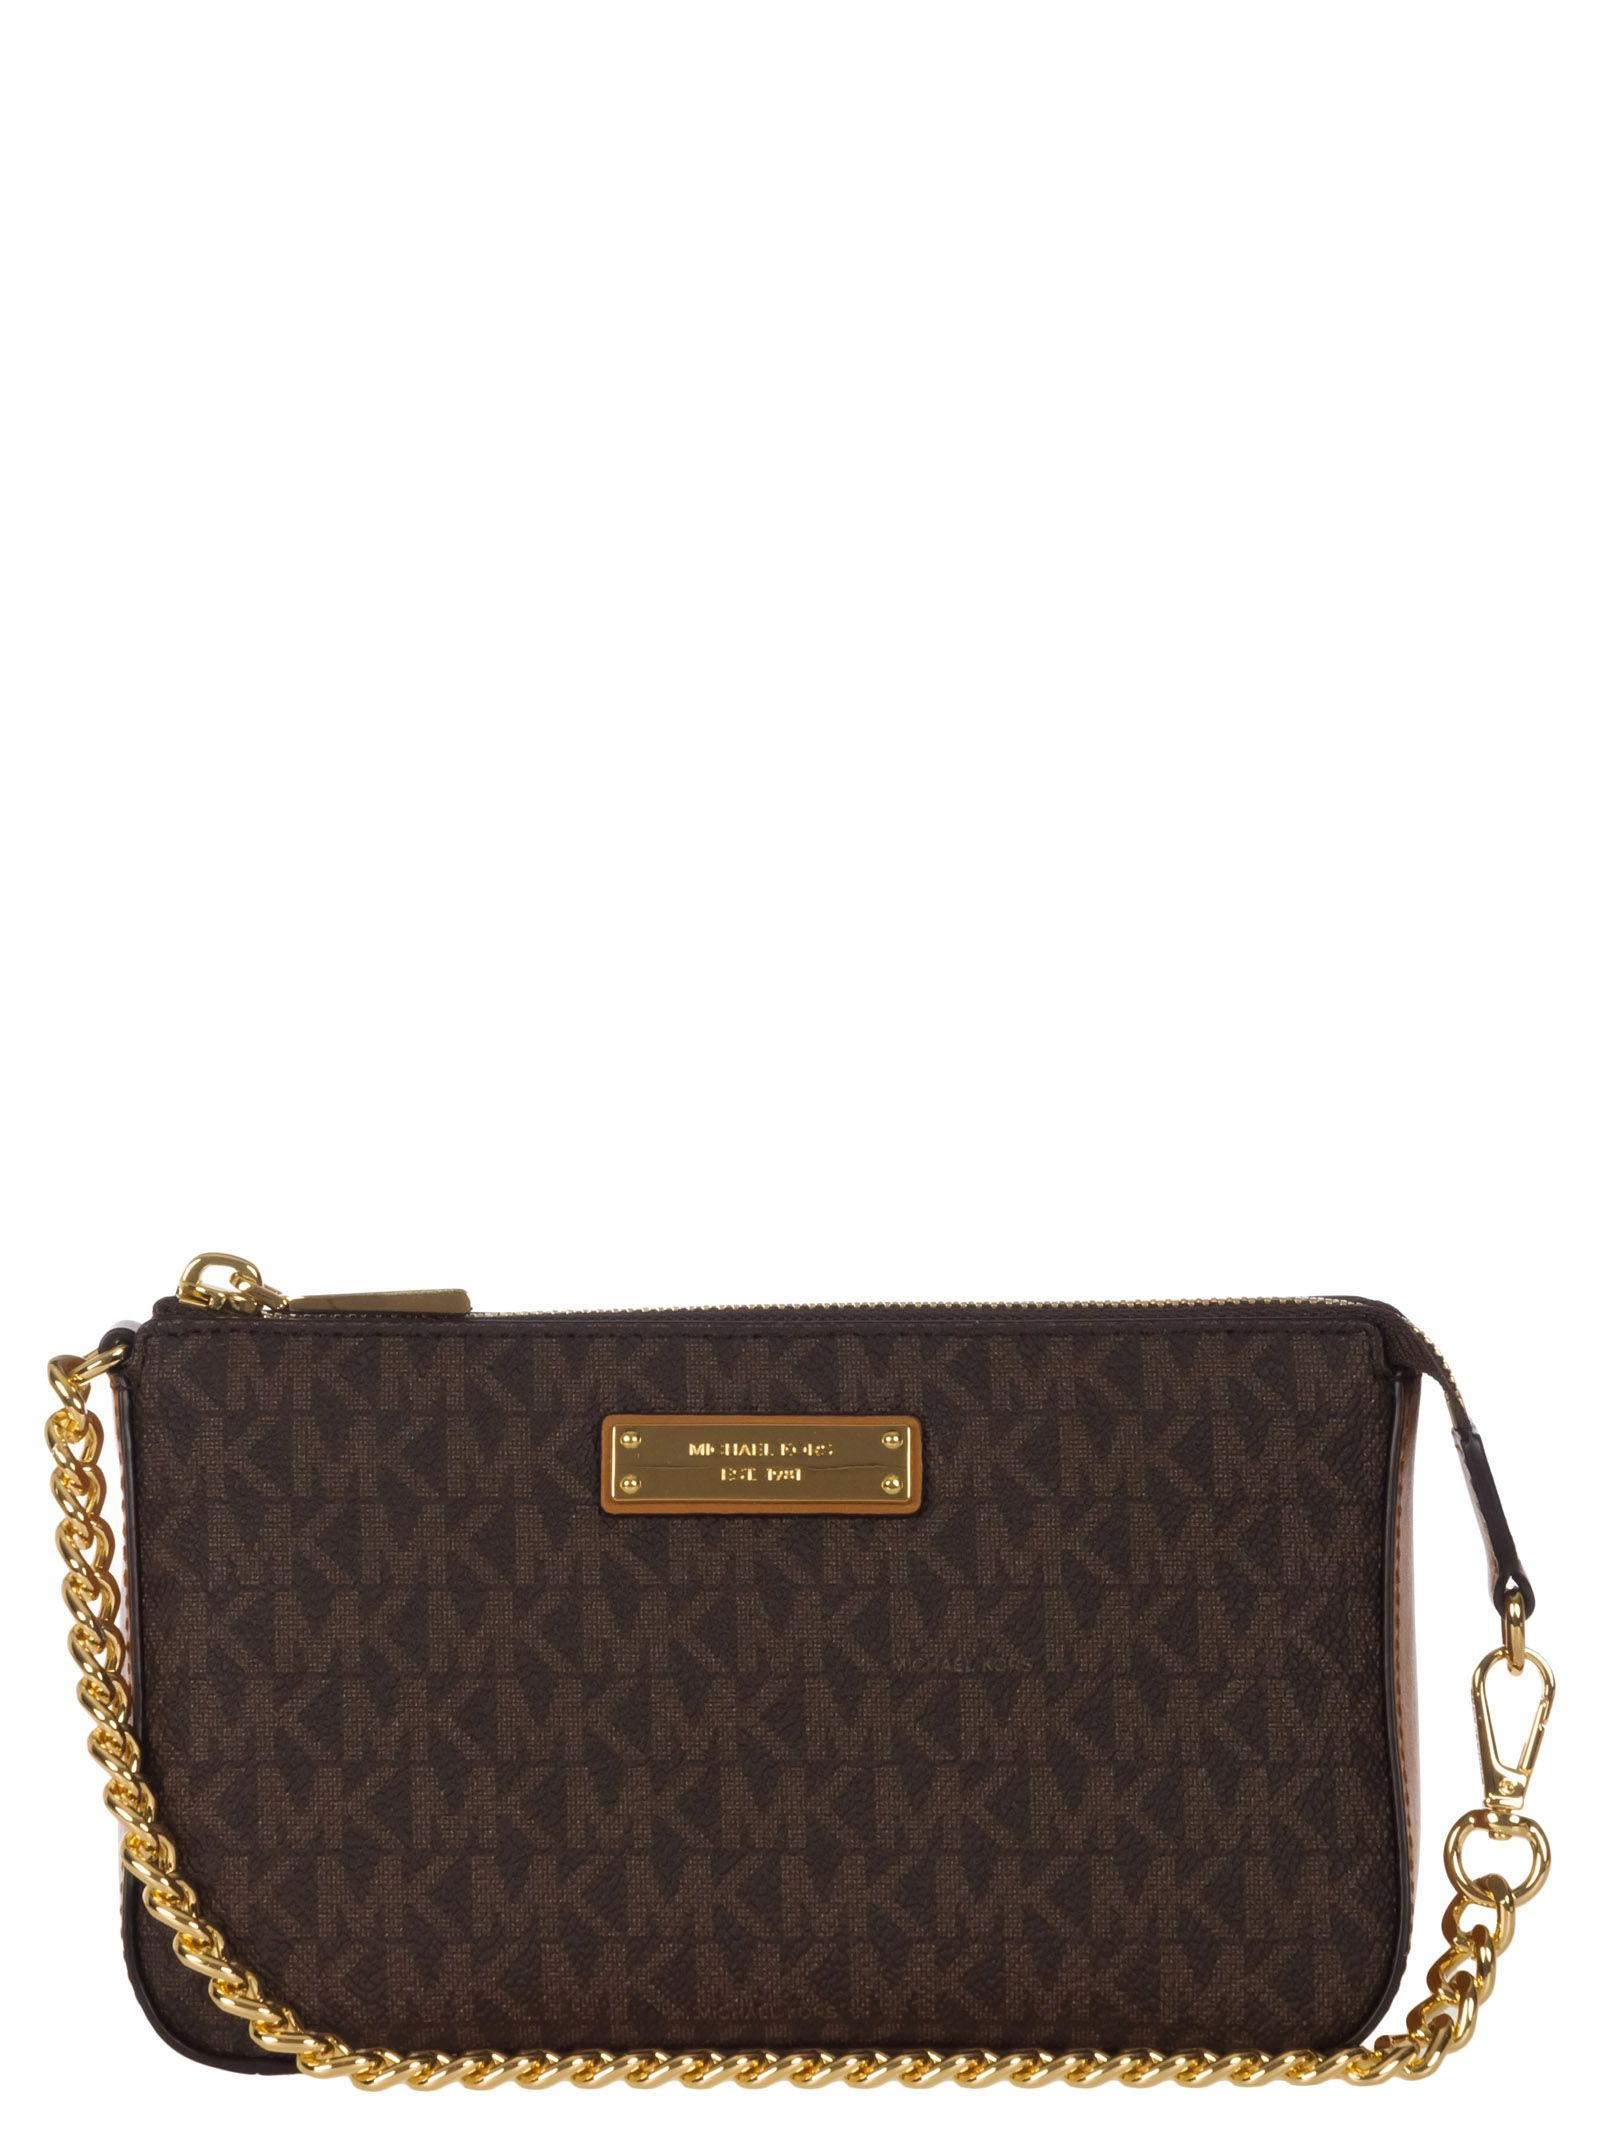 2bca6fbcc0d Michael Kors Michael Kors Chain Clutch Bag - Brown - 10857615 | italist